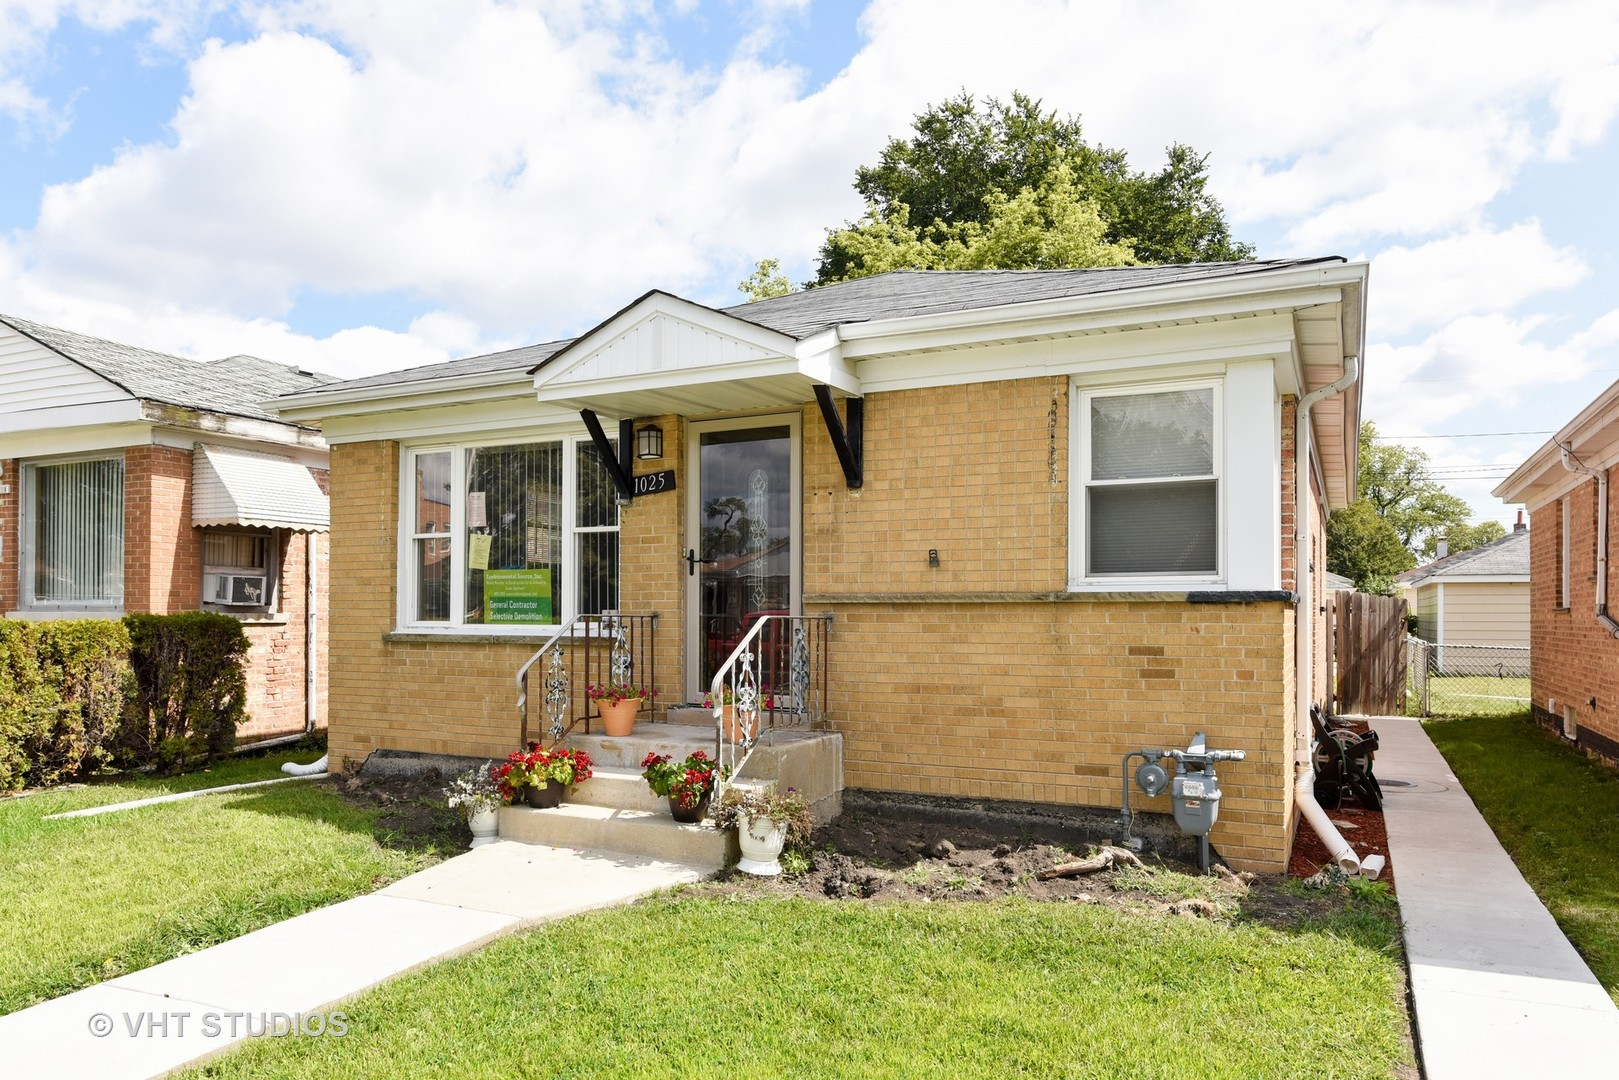 Photo of 1025 31st Avenue  BELLWOOD  IL